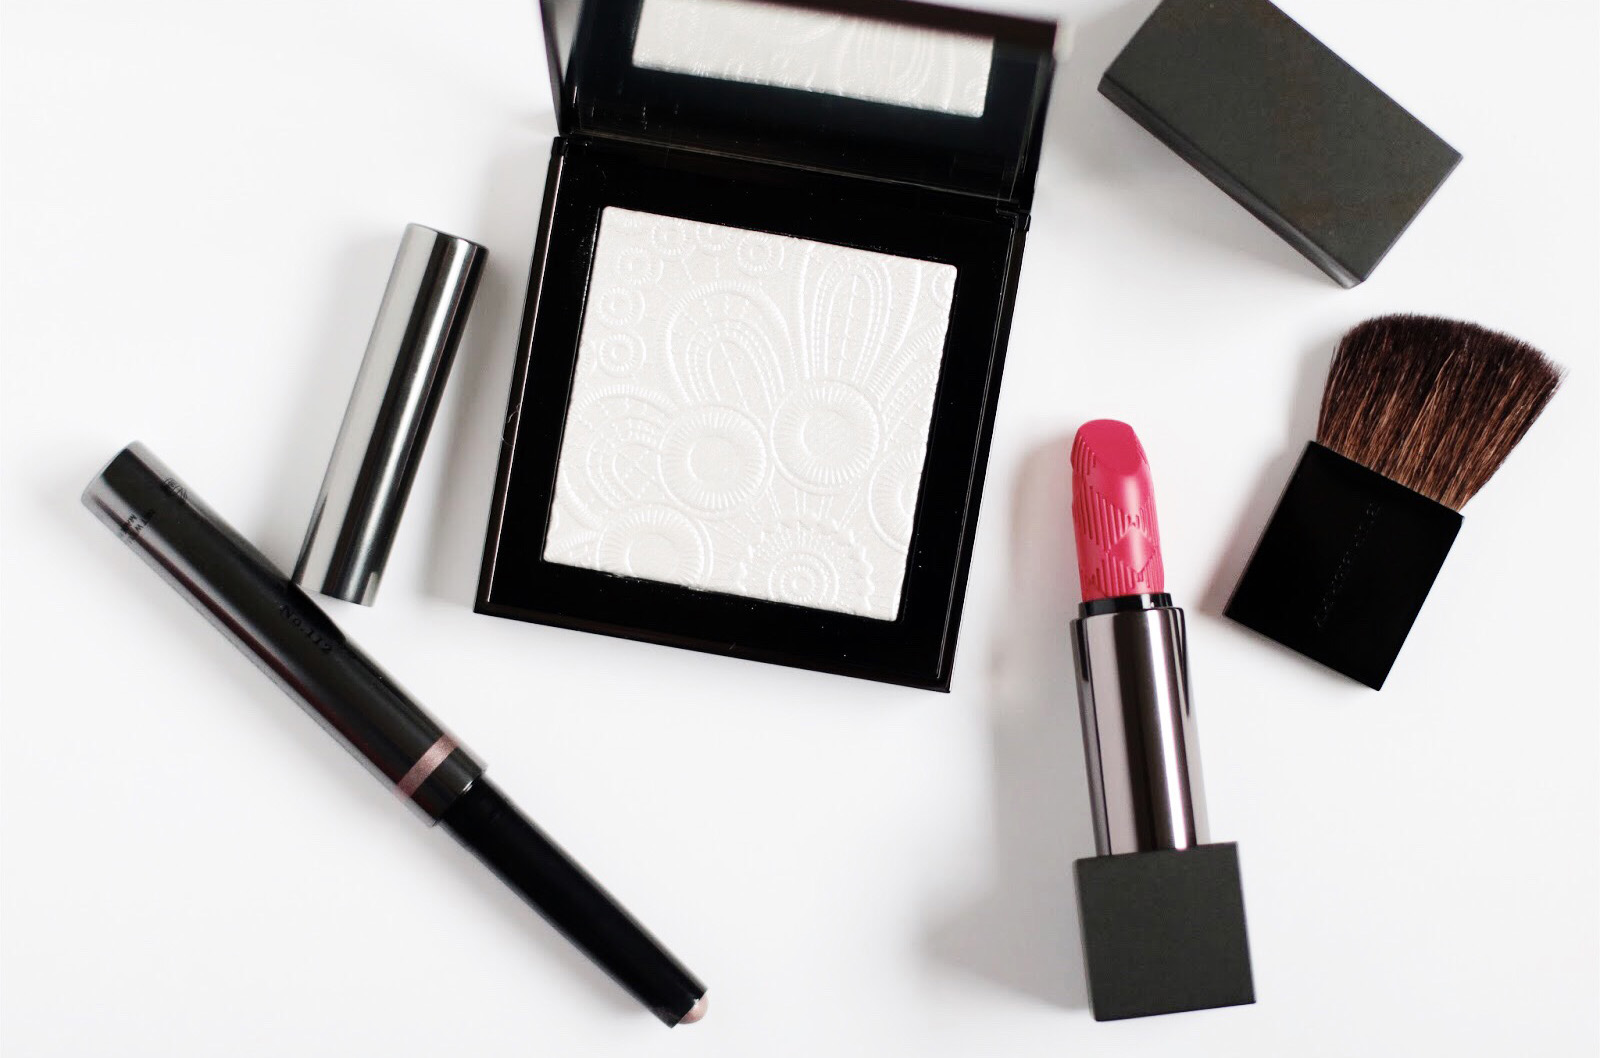 burberry collection maquillage printemps 2016 poudre highligter 01 white avis test swatches